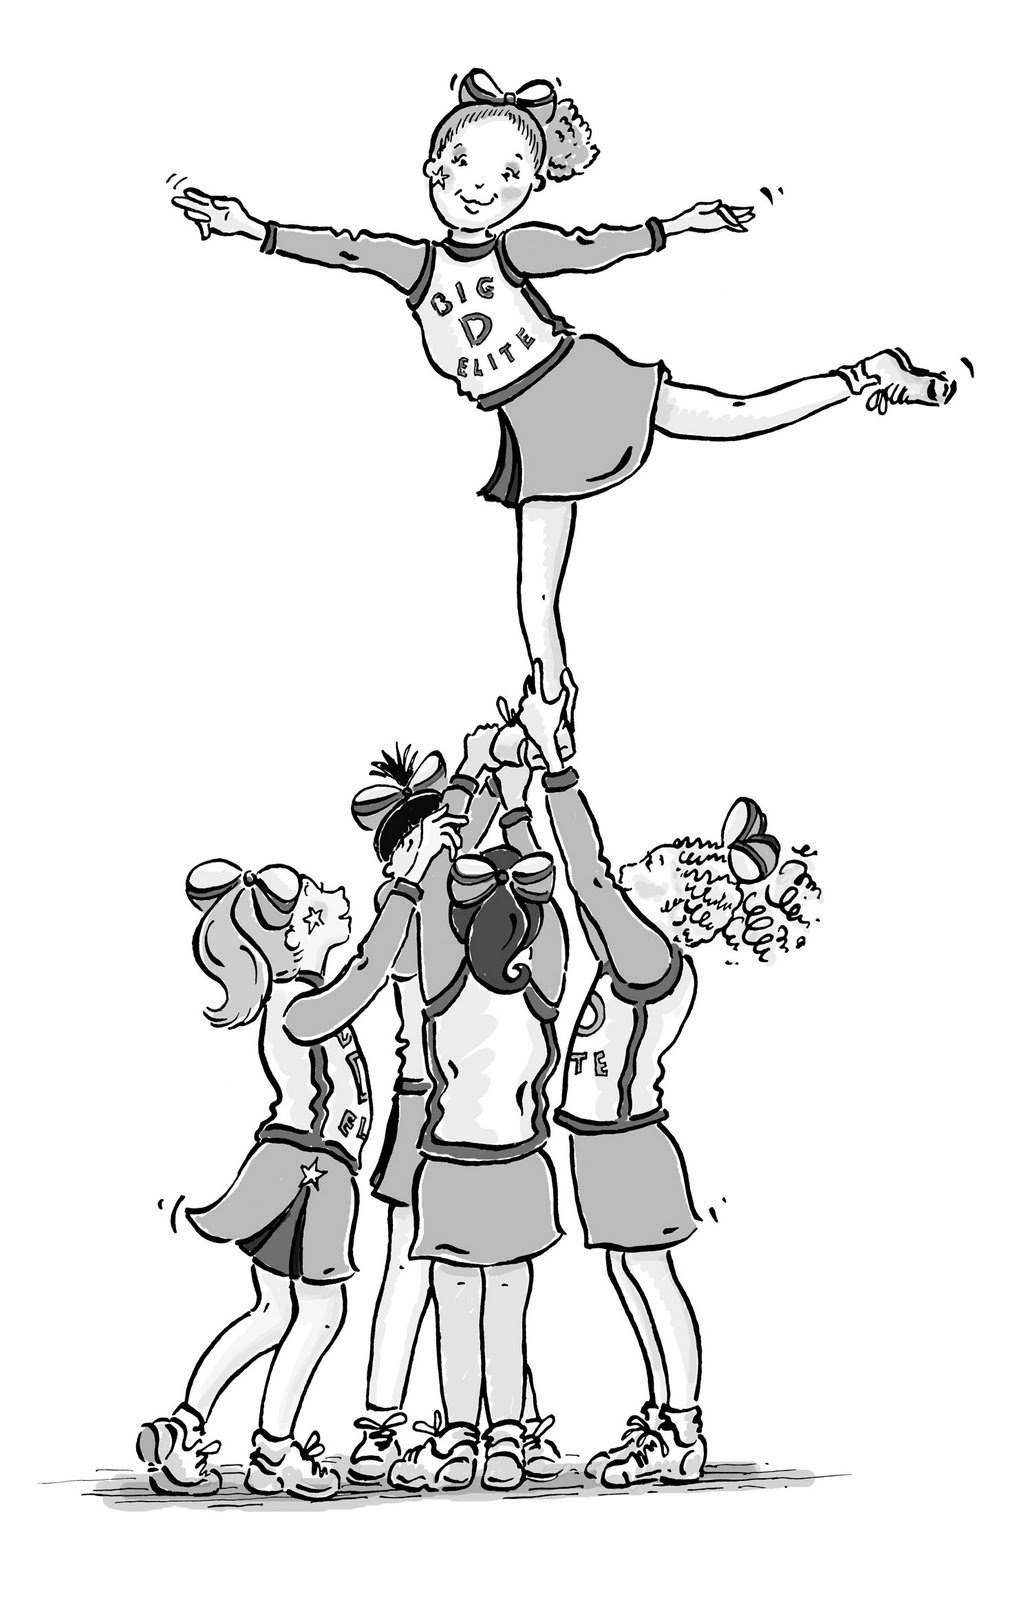 how to draw a cheerleader cheerleading stunt coloring pages free download clip art to a cheerleader draw how